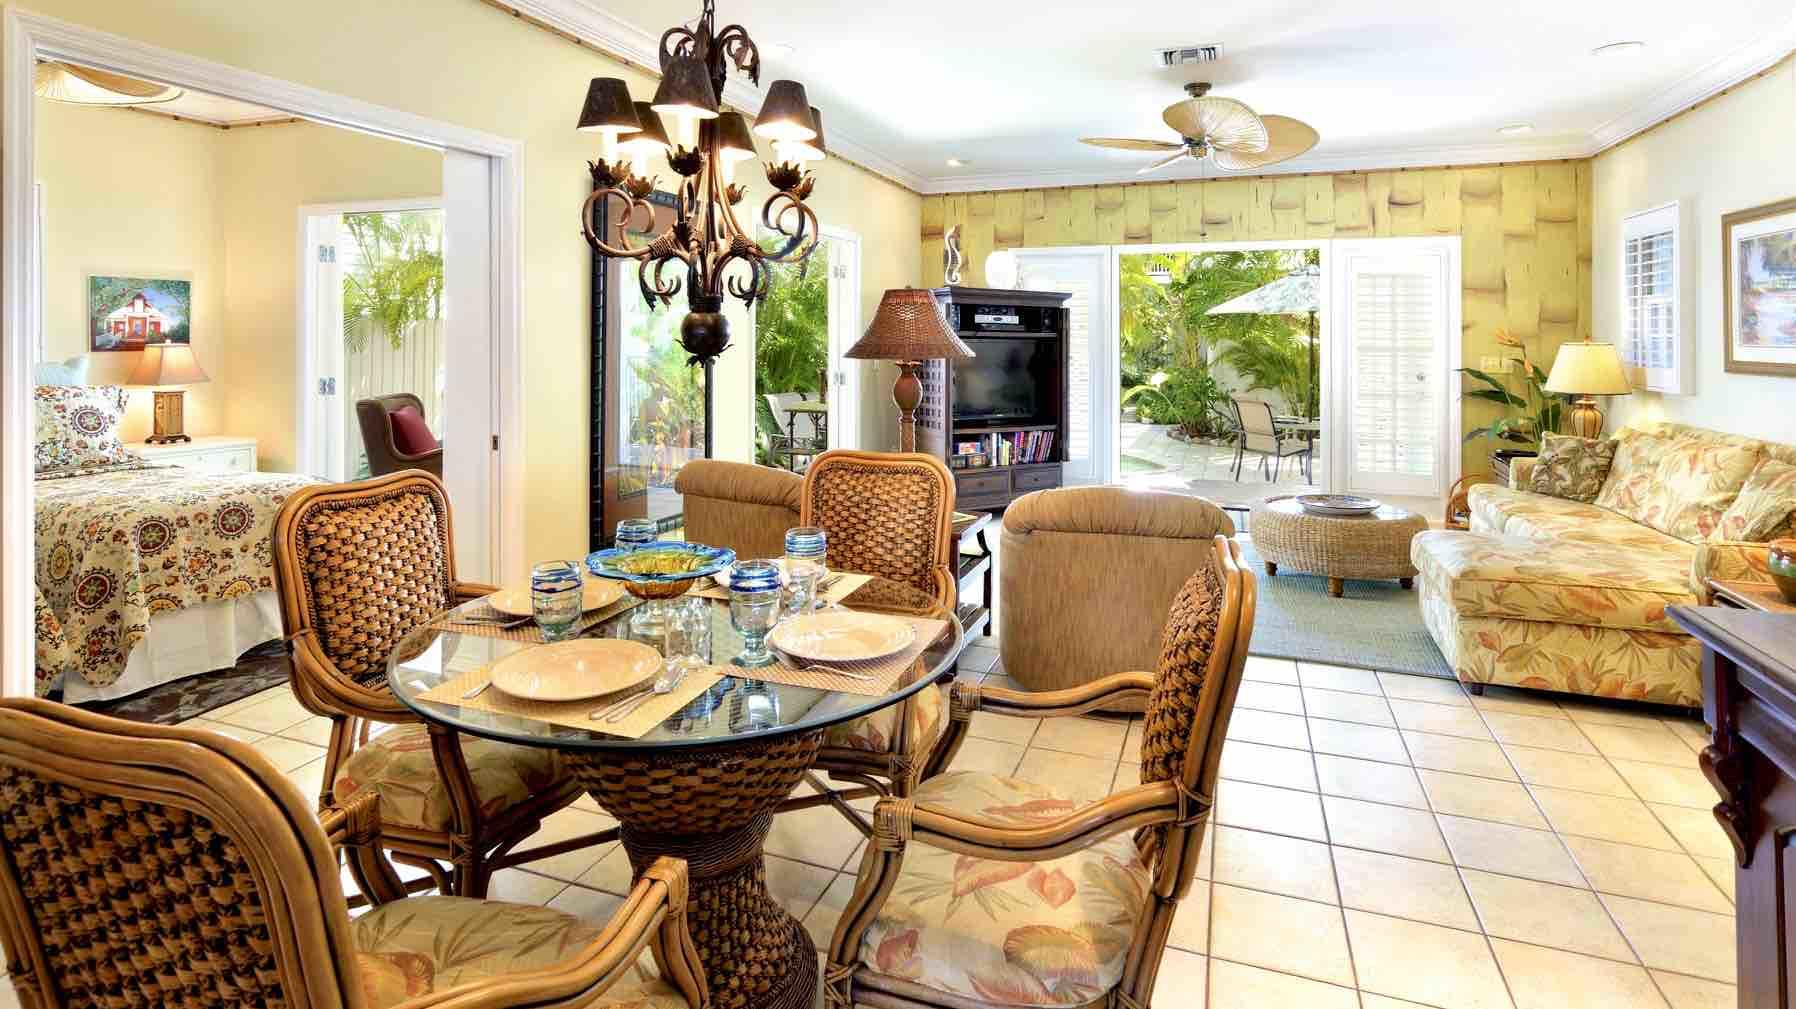 The dining table seats 4. The open design plan allows tropical breezes throughout...